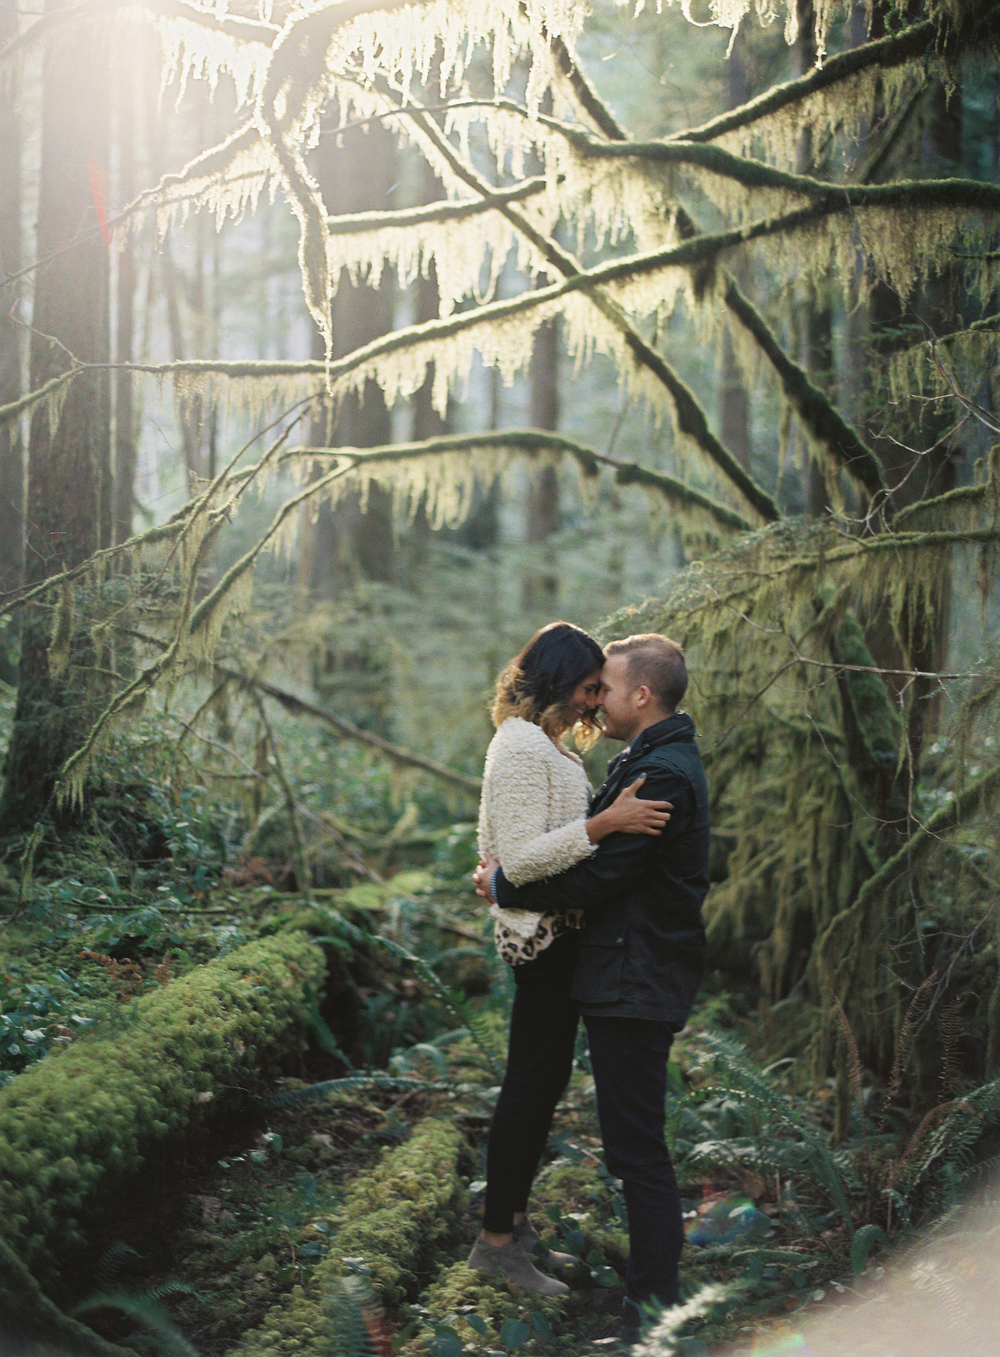 ryan-flynn-photography-best-wedding-photos-2014-0169.JPG